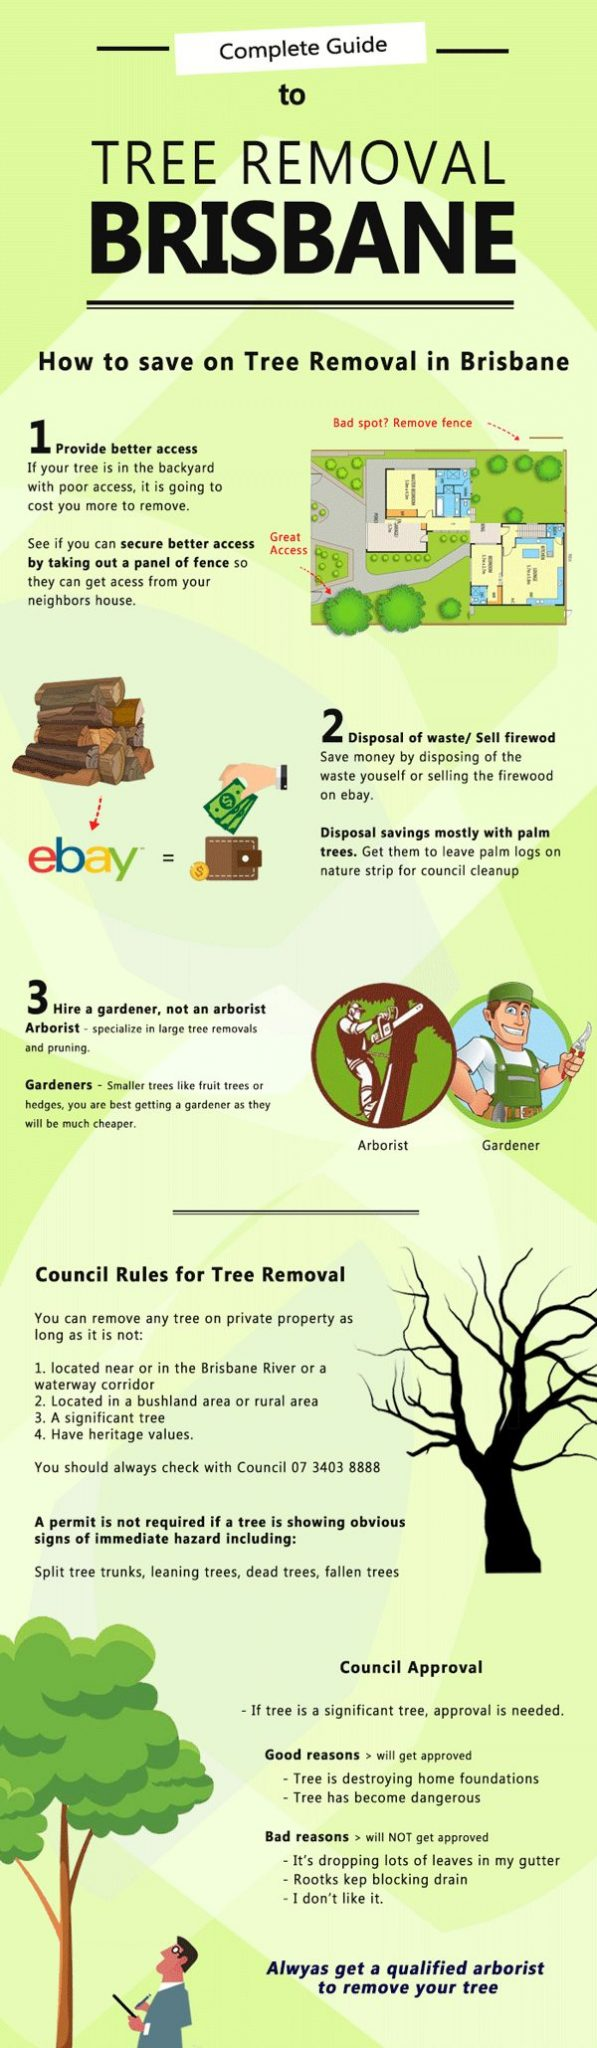 tree removal Brisbane infographic